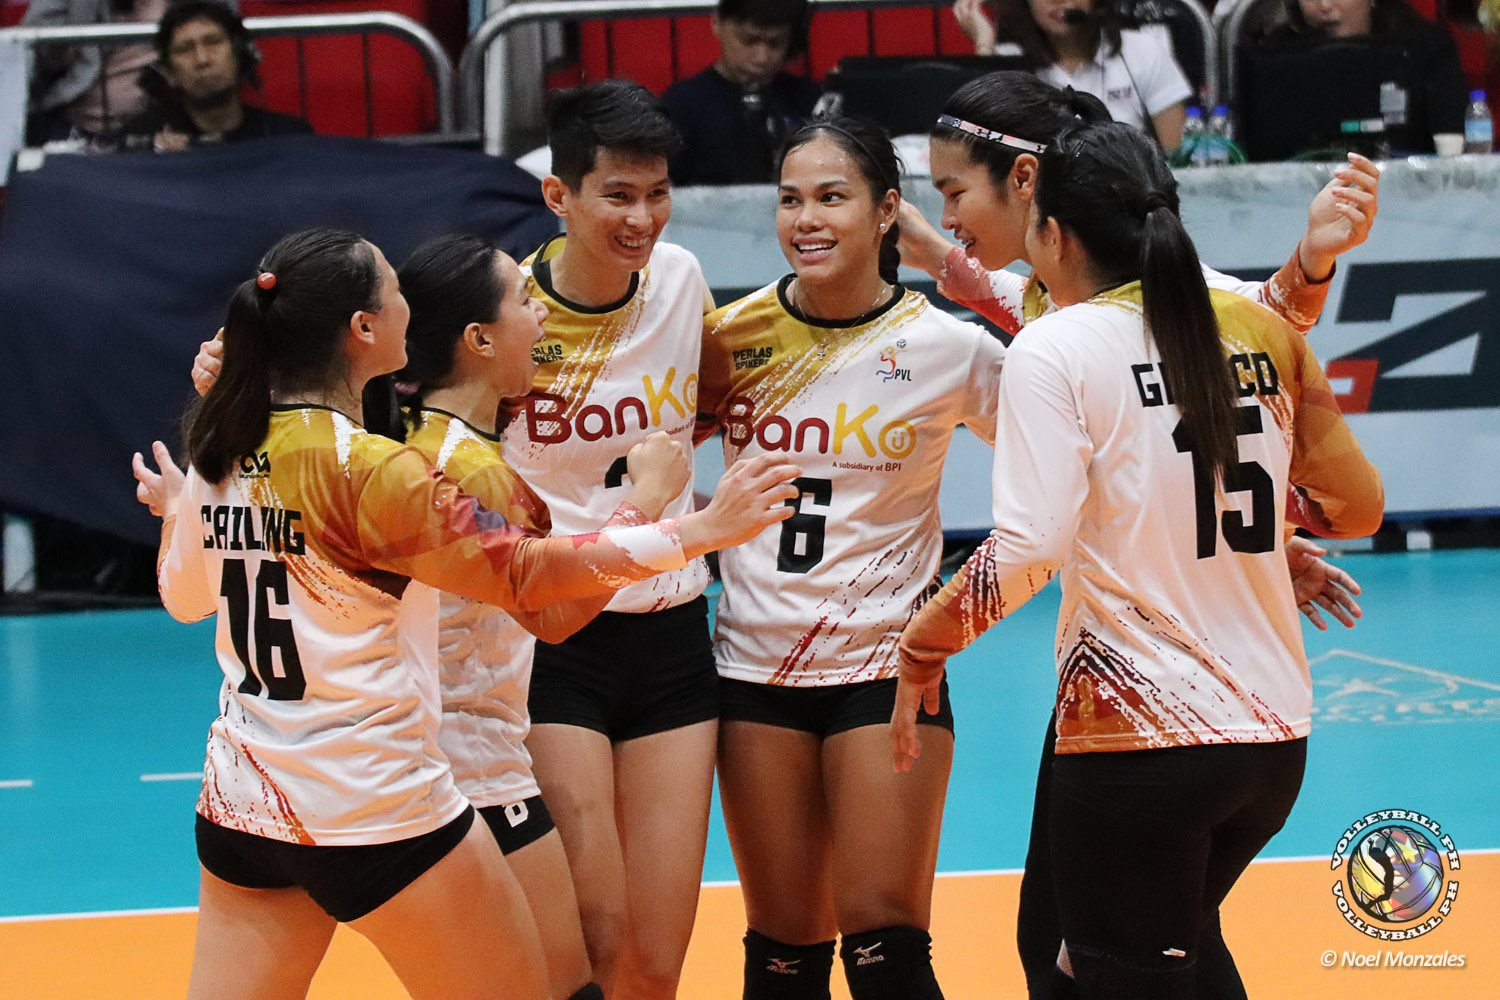 Banko Perlas Spikers get revenge by defeating Motolite Power Builders in three